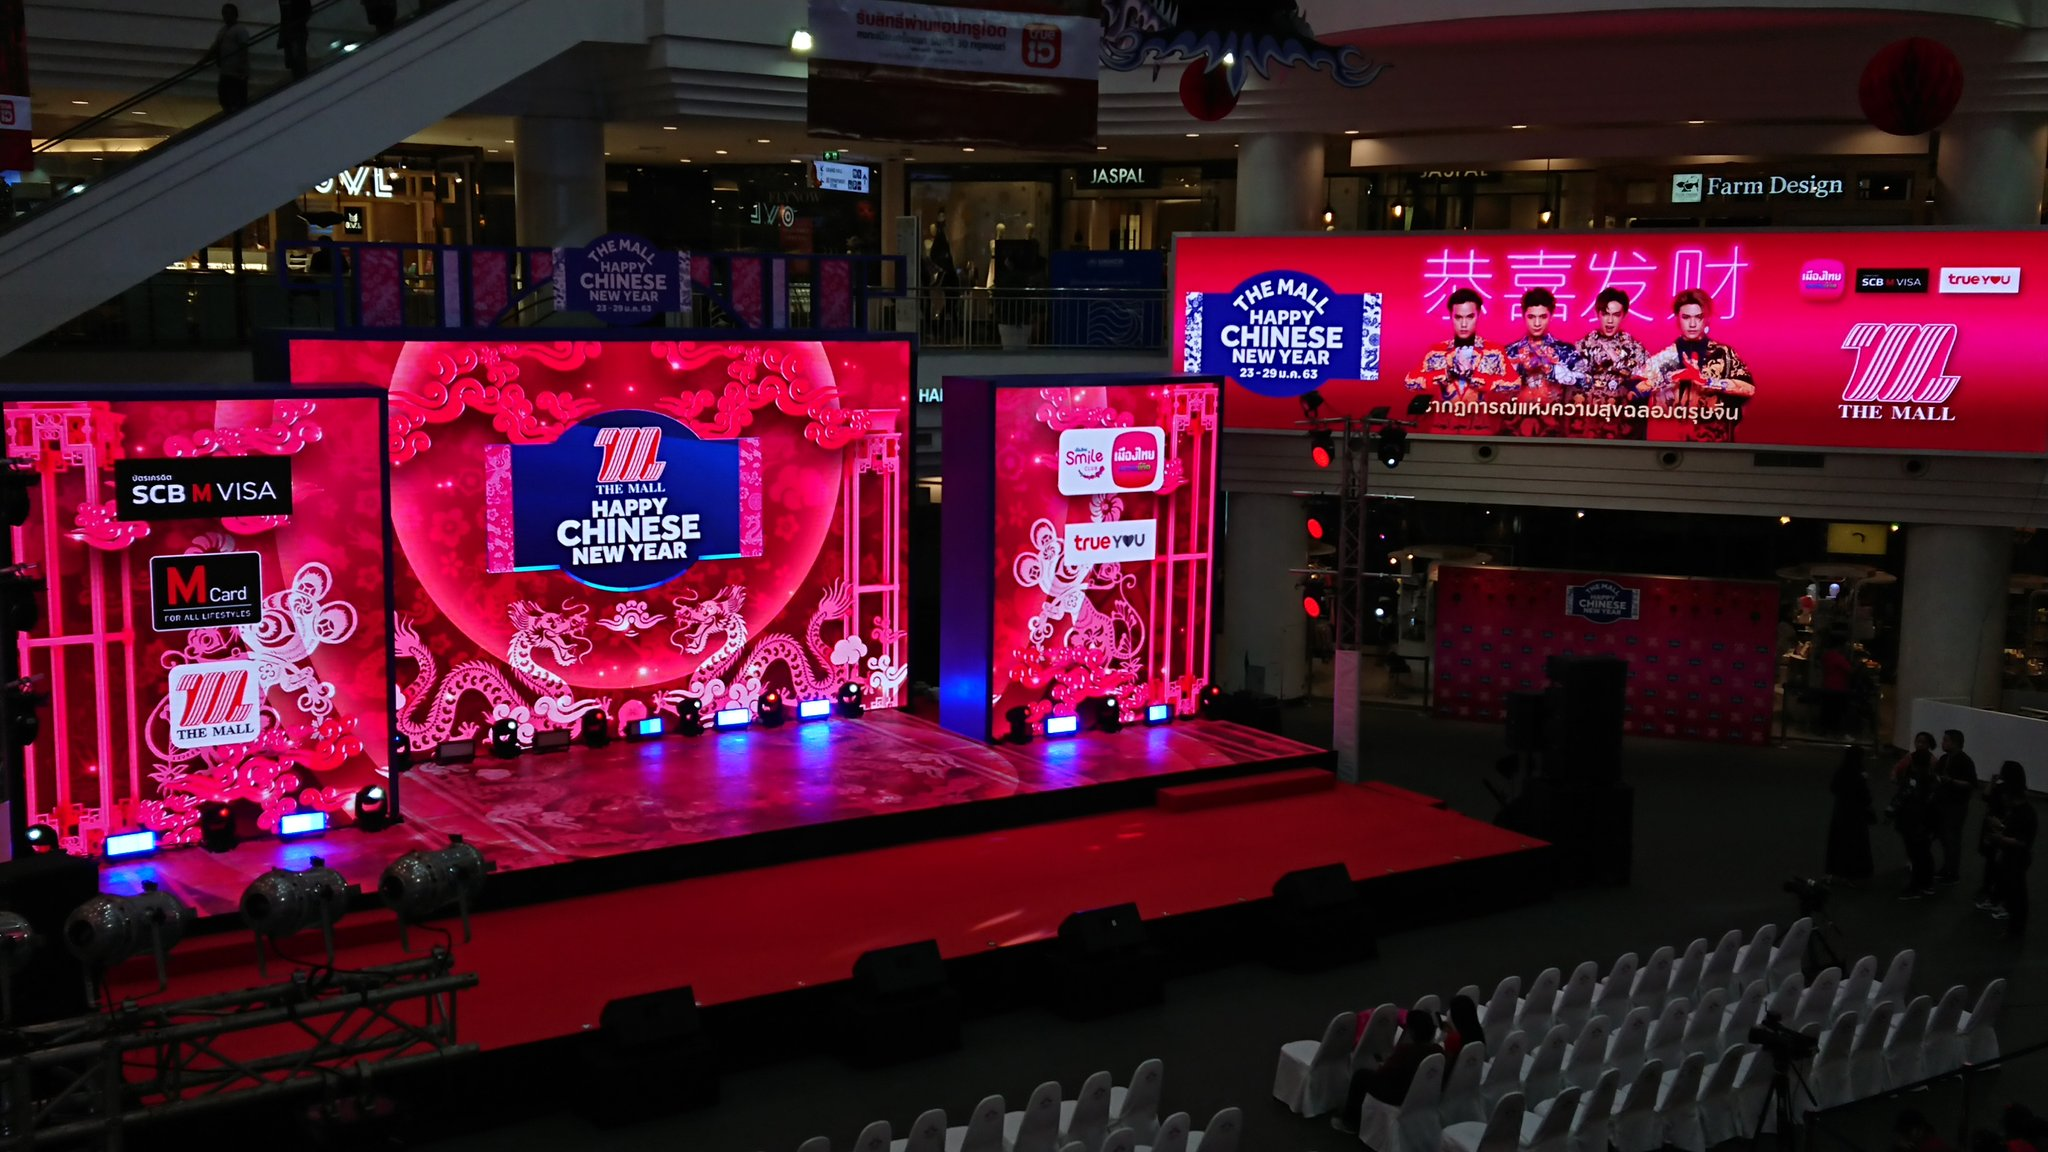 Porsche Sivakorn Interfc On Twitter Are You Ready The Mall Happy Chinese New Year 2020 At The Mall Bangkapi 23 01 2020 Xxsivk Porschesivakorn Themallhappychinesenewyear Themallxtrinity 4nologue Https T Co E9kaeiuqns